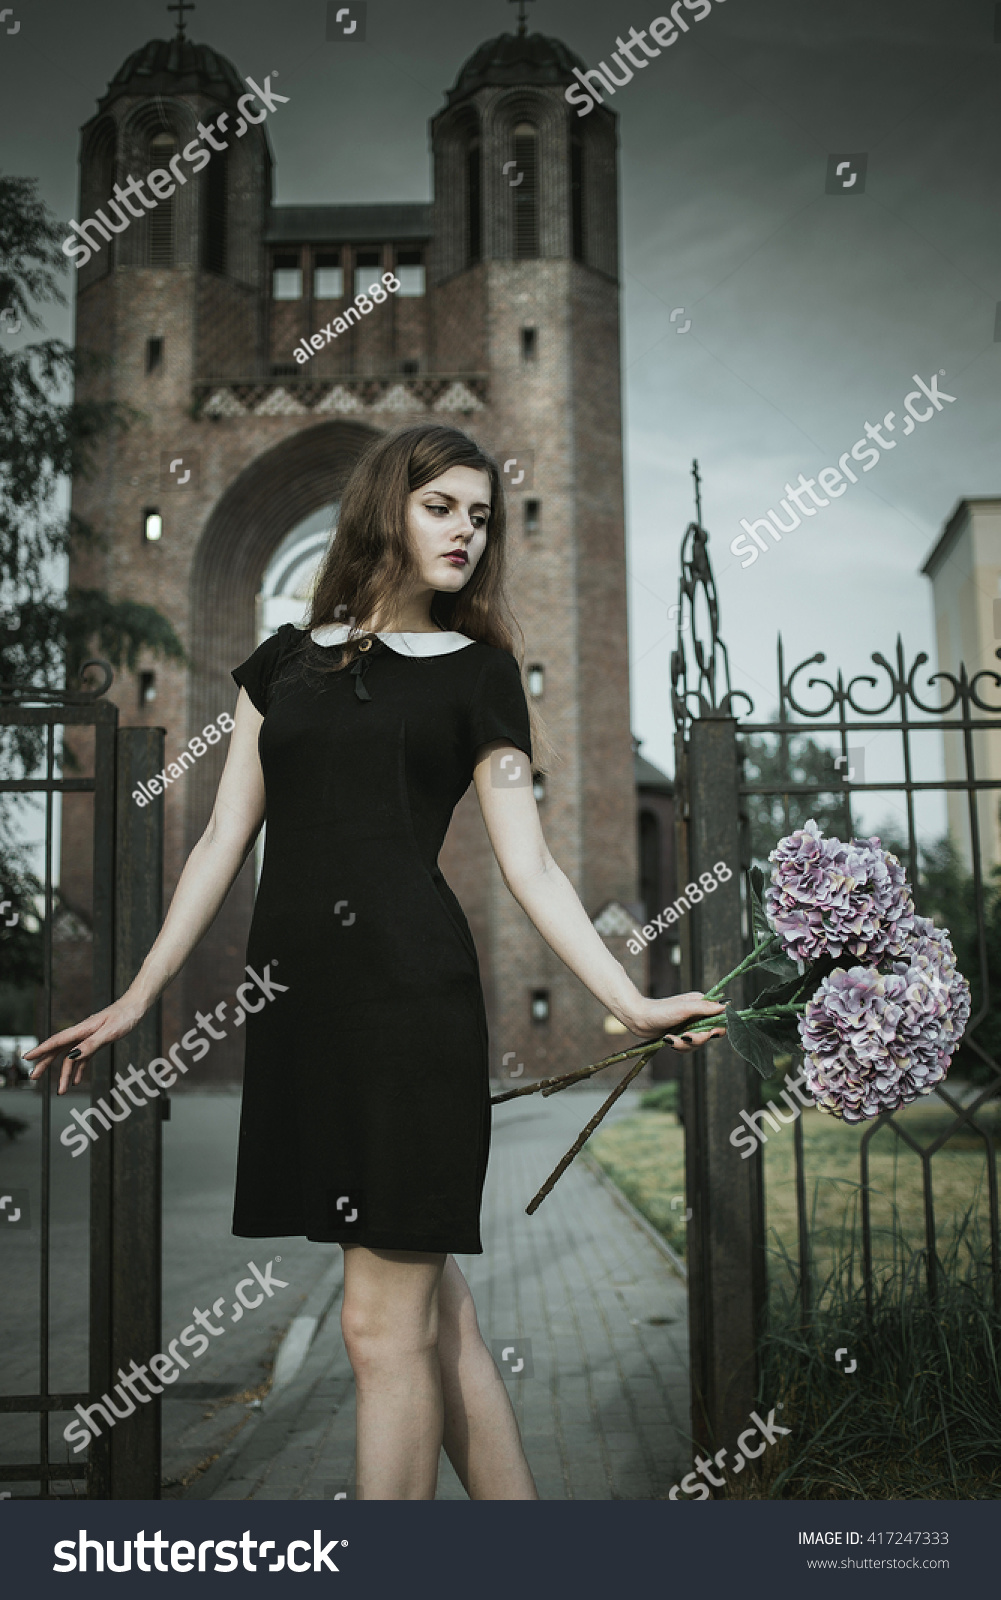 2c815bb7cad1 Cute Goth Girl Wearing Black Dress Stock Photo (Edit Now) 417247333 ...